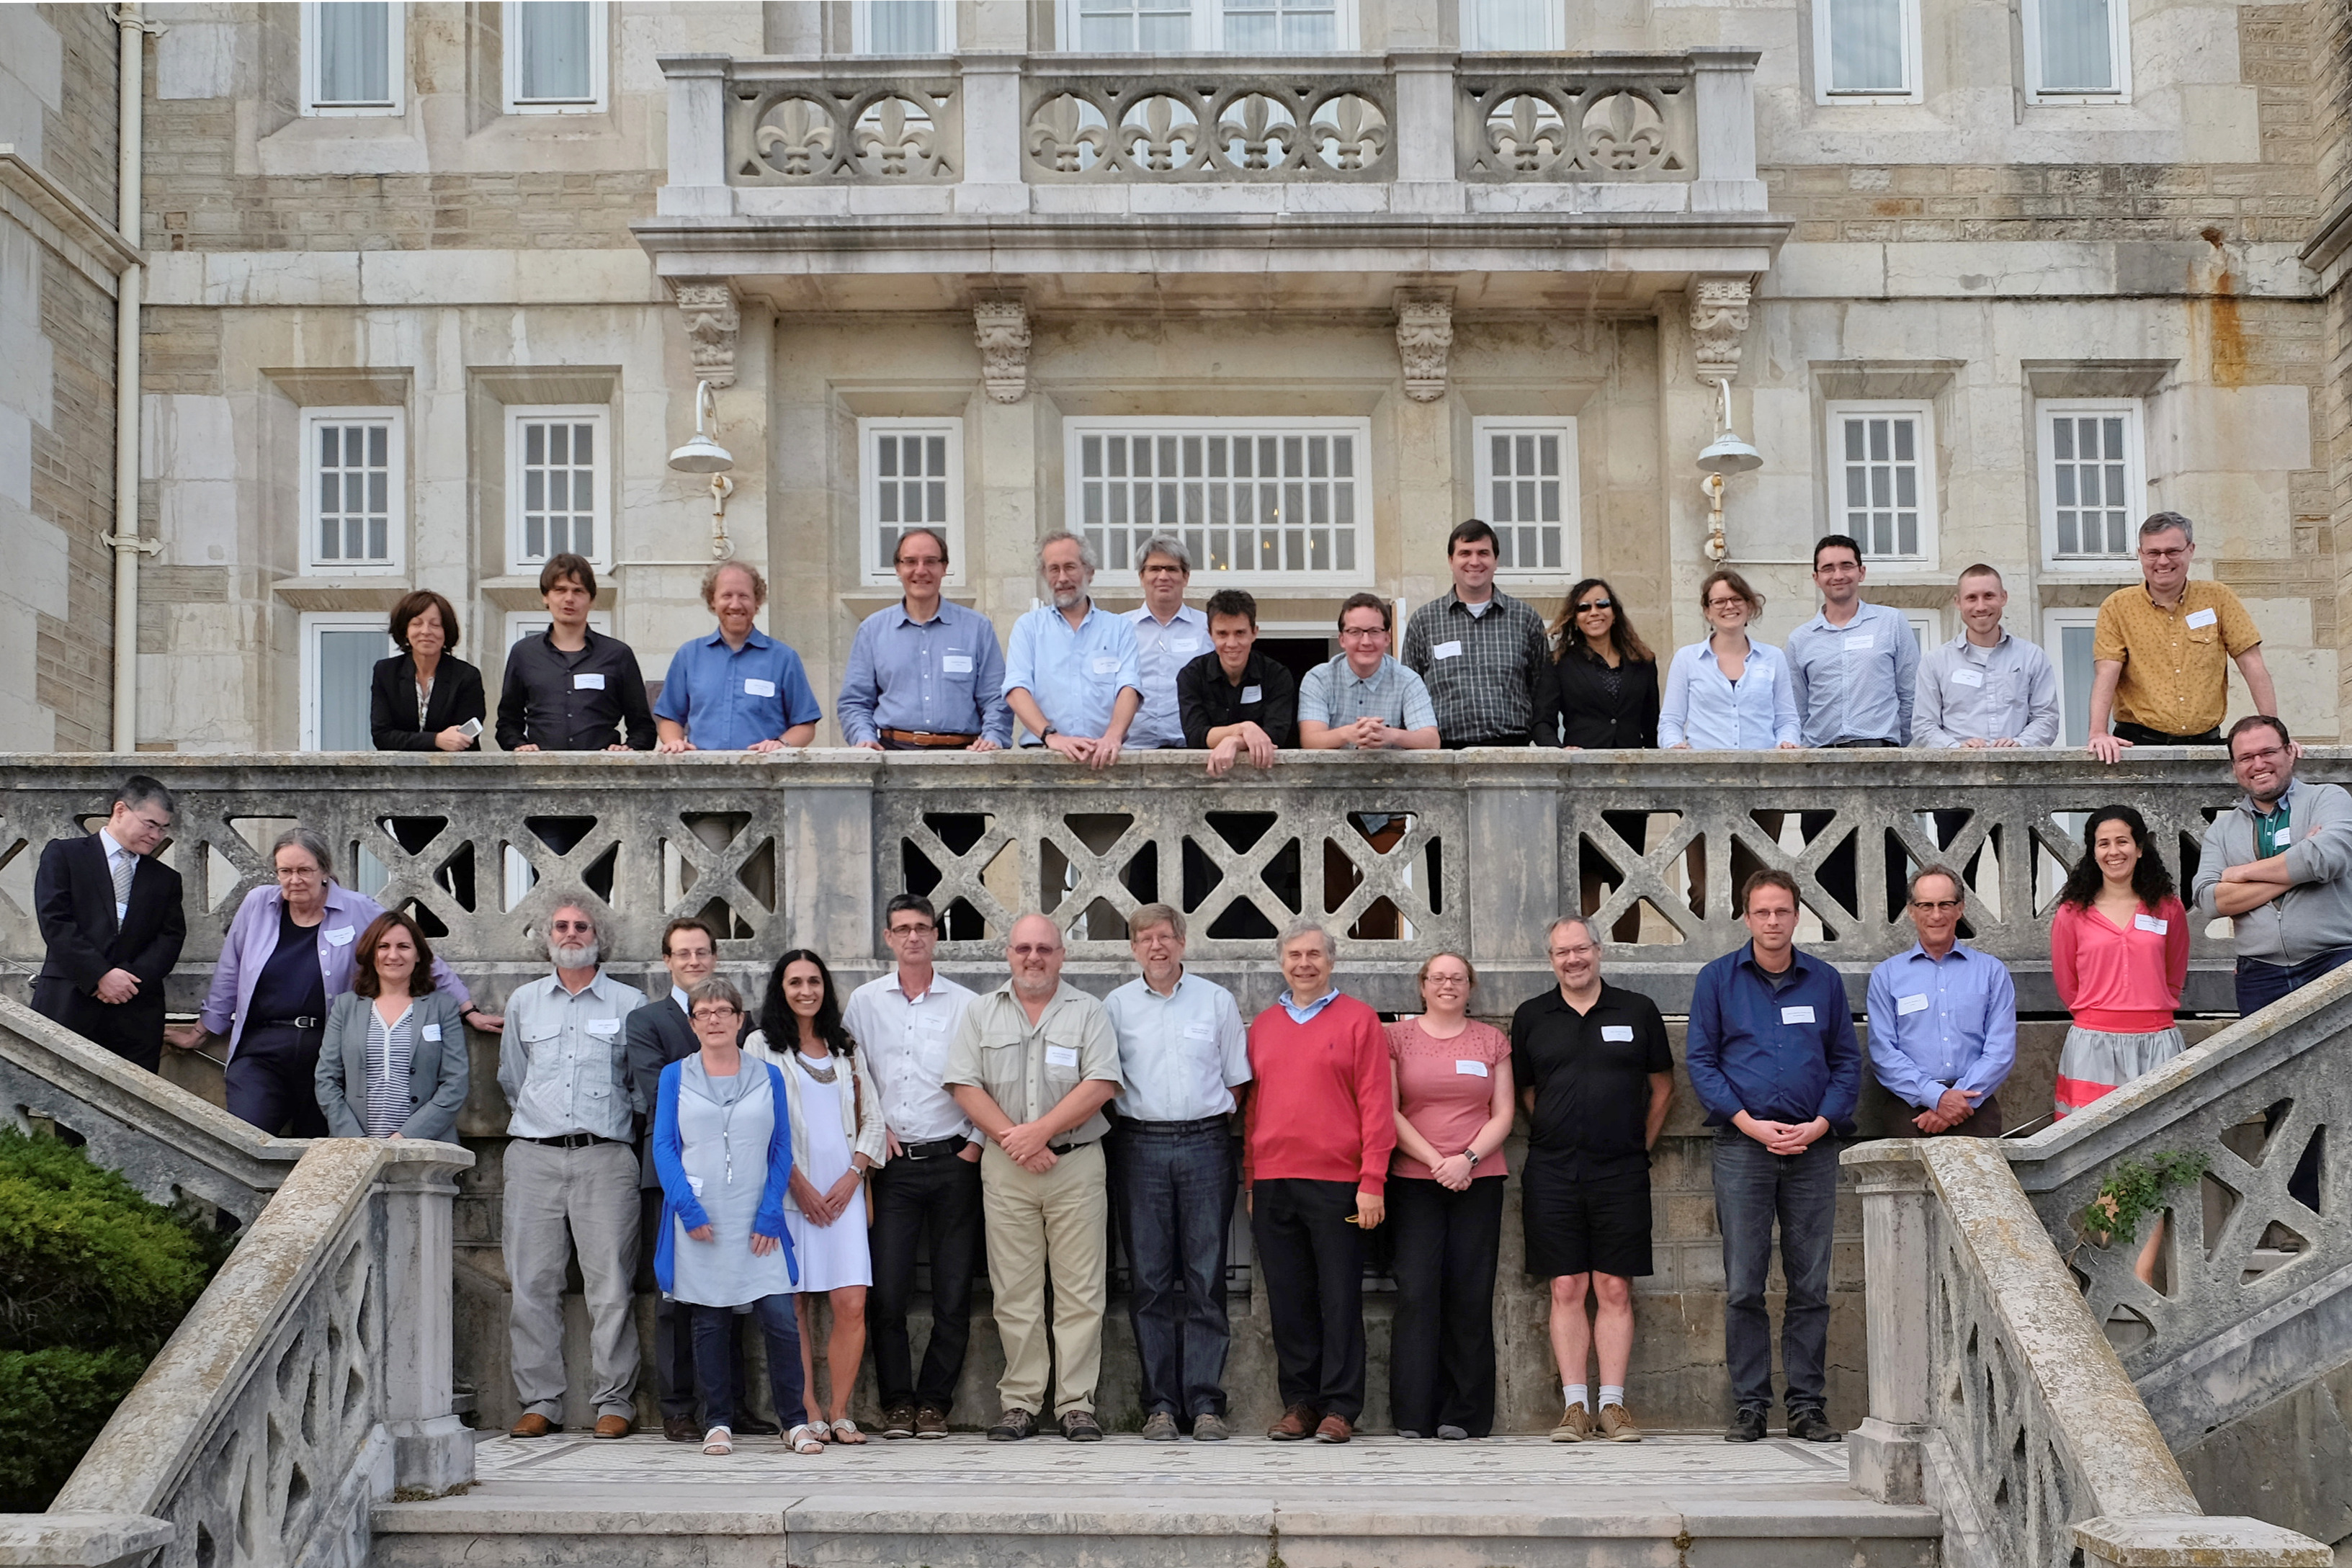 WCRP meeting group photo